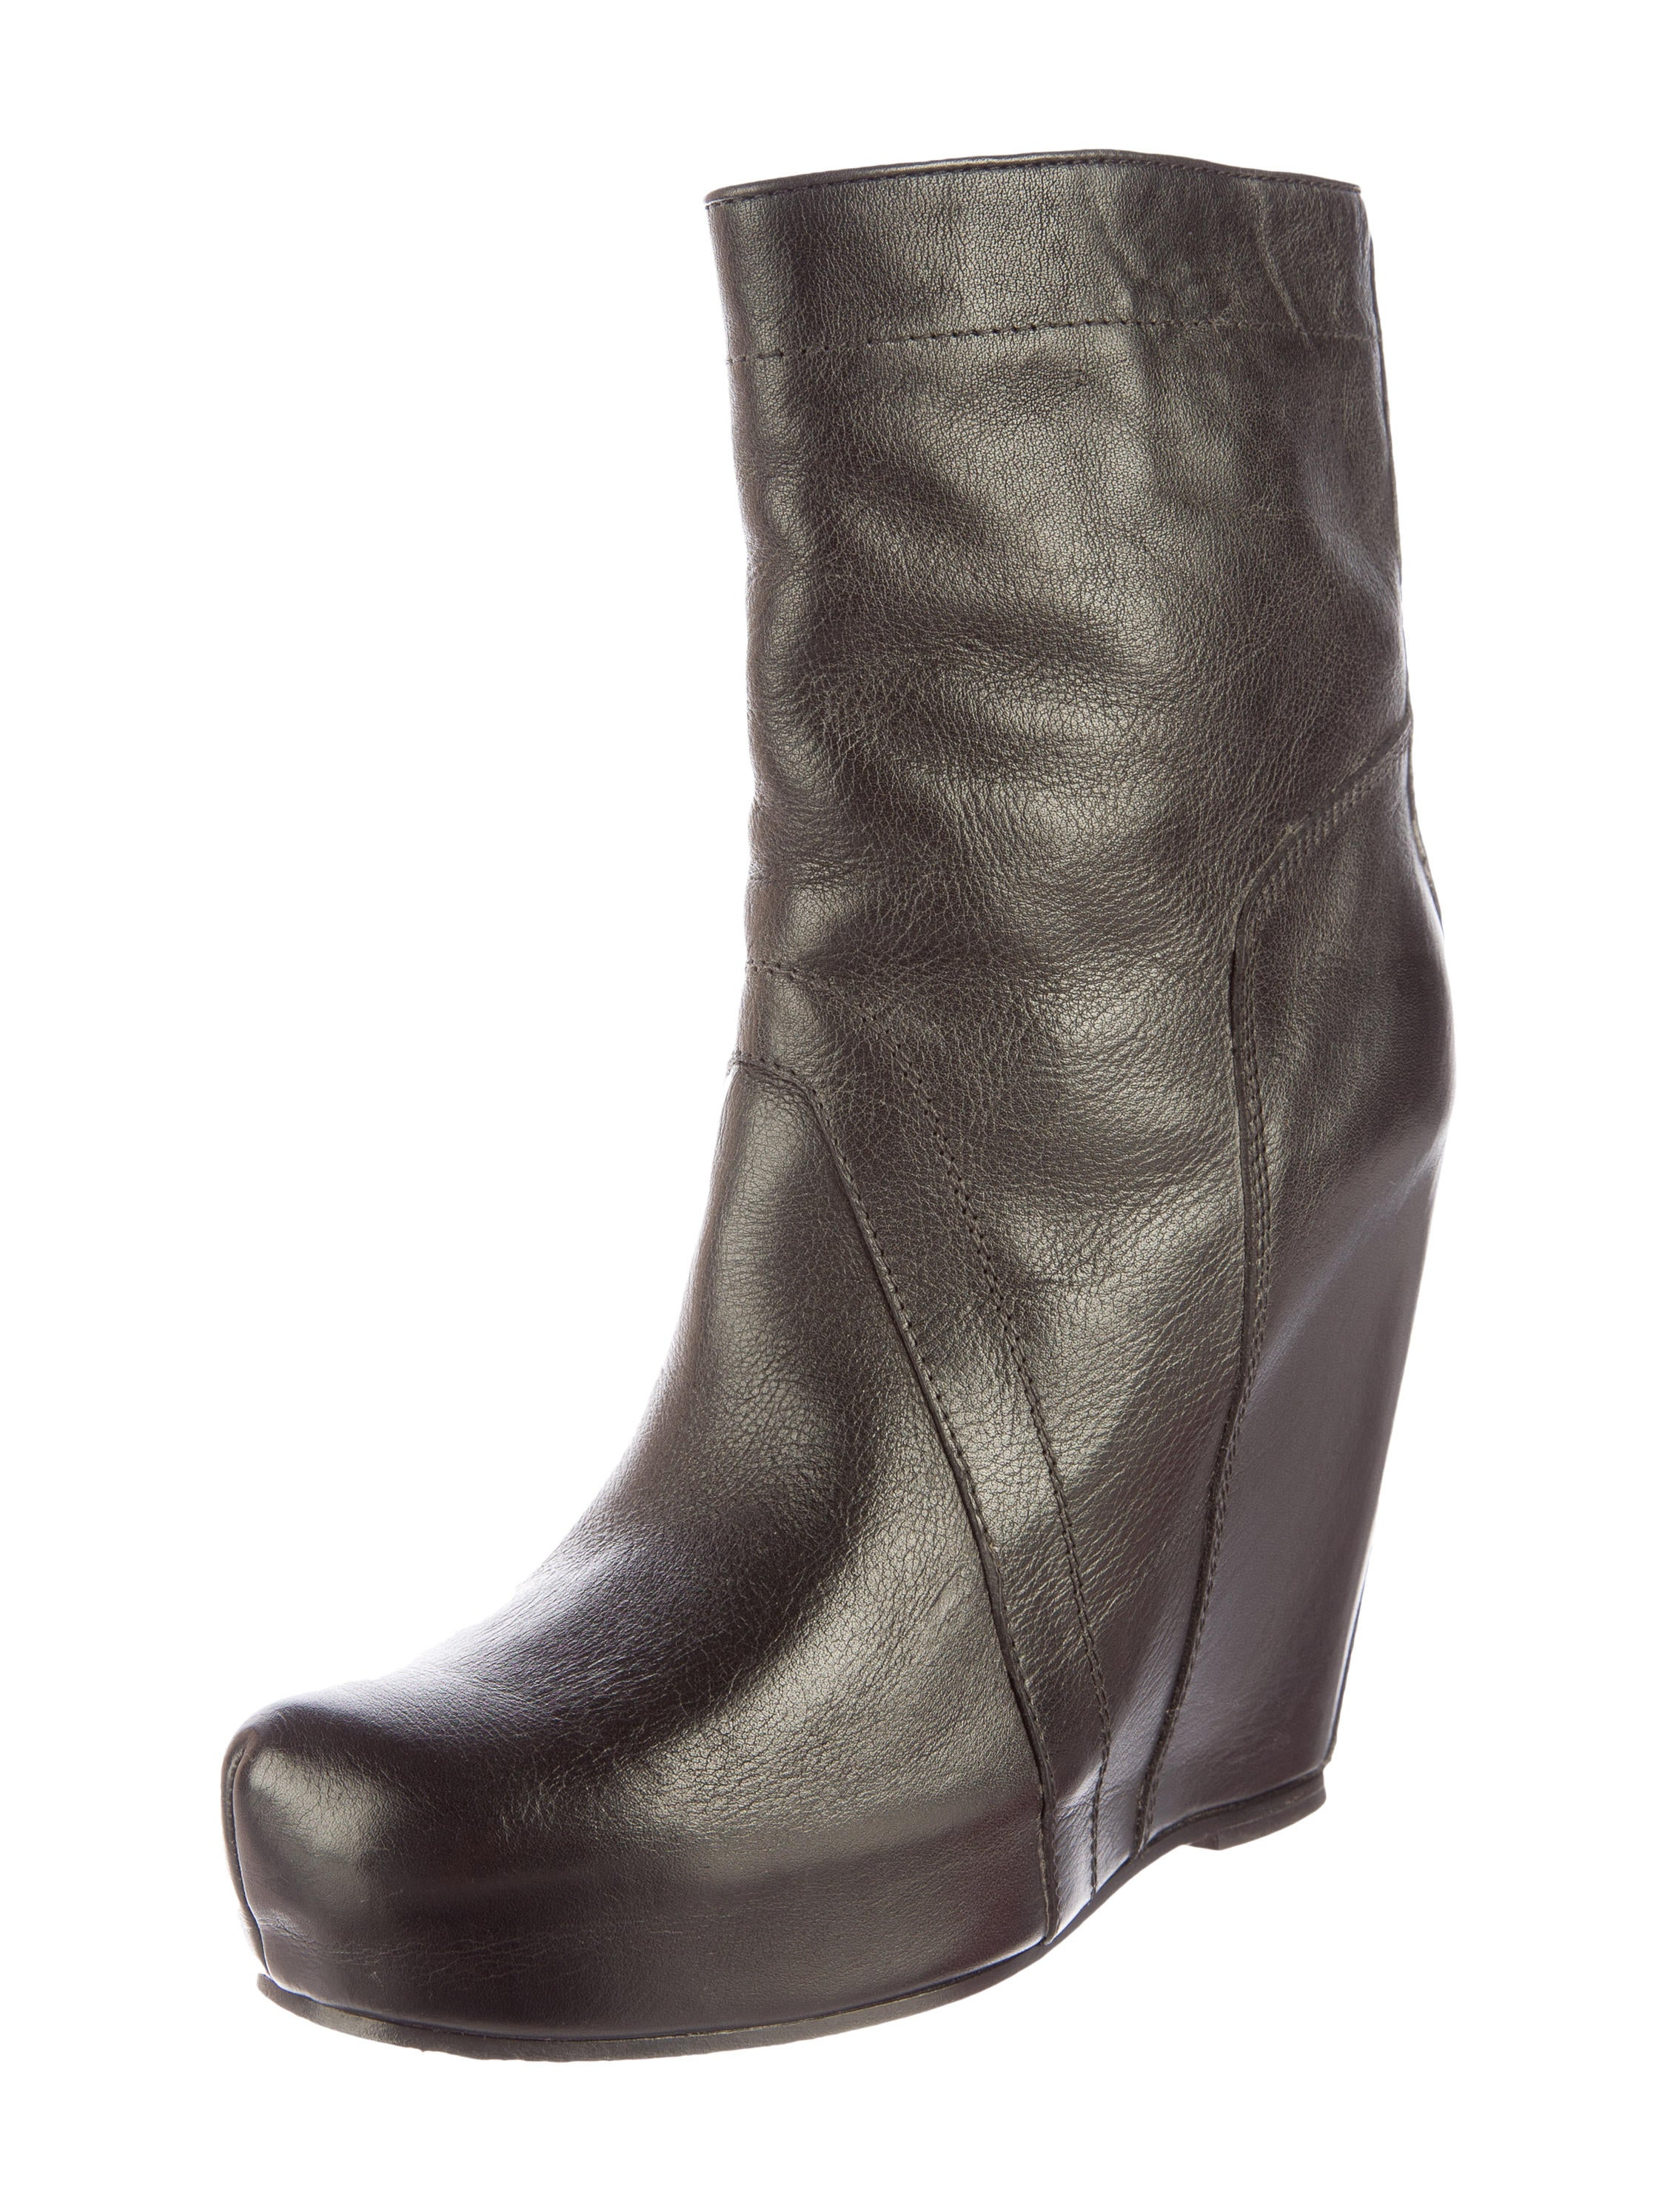 rick owens leather wedge ankle boots shoes ric25881